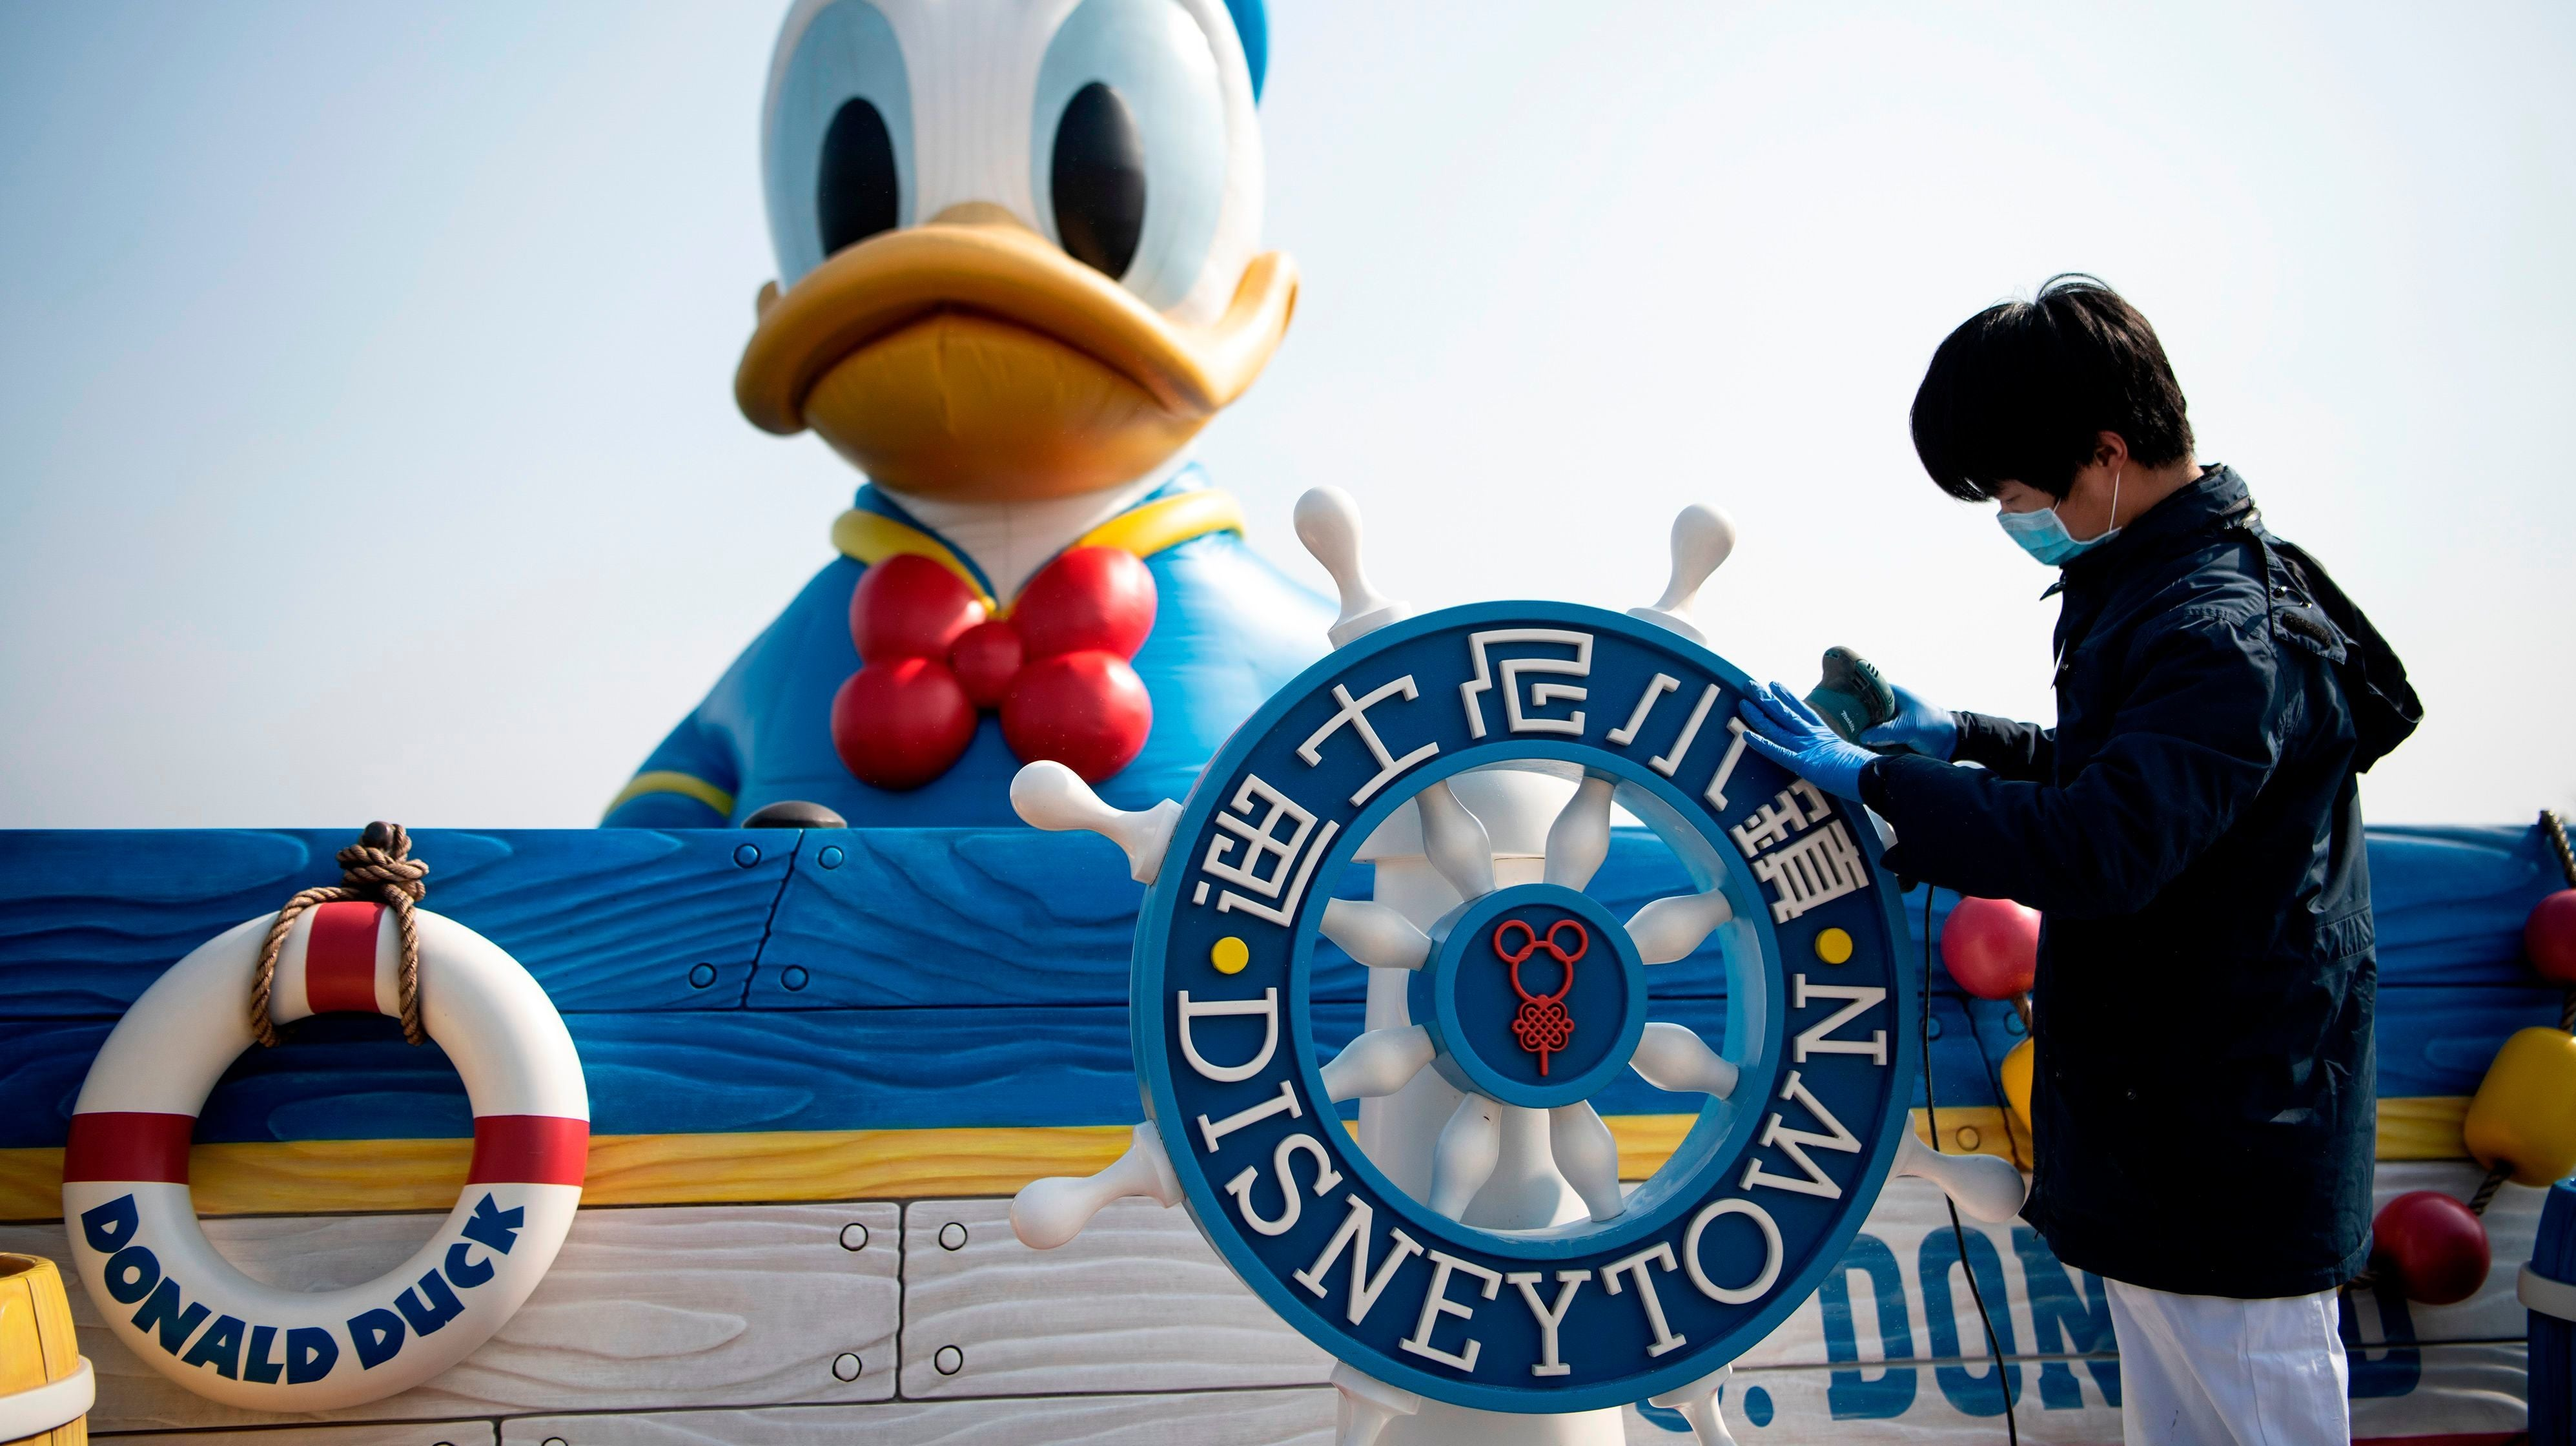 Disneyland In China To Reopen May 11 With Temperature Checks And Masks Required